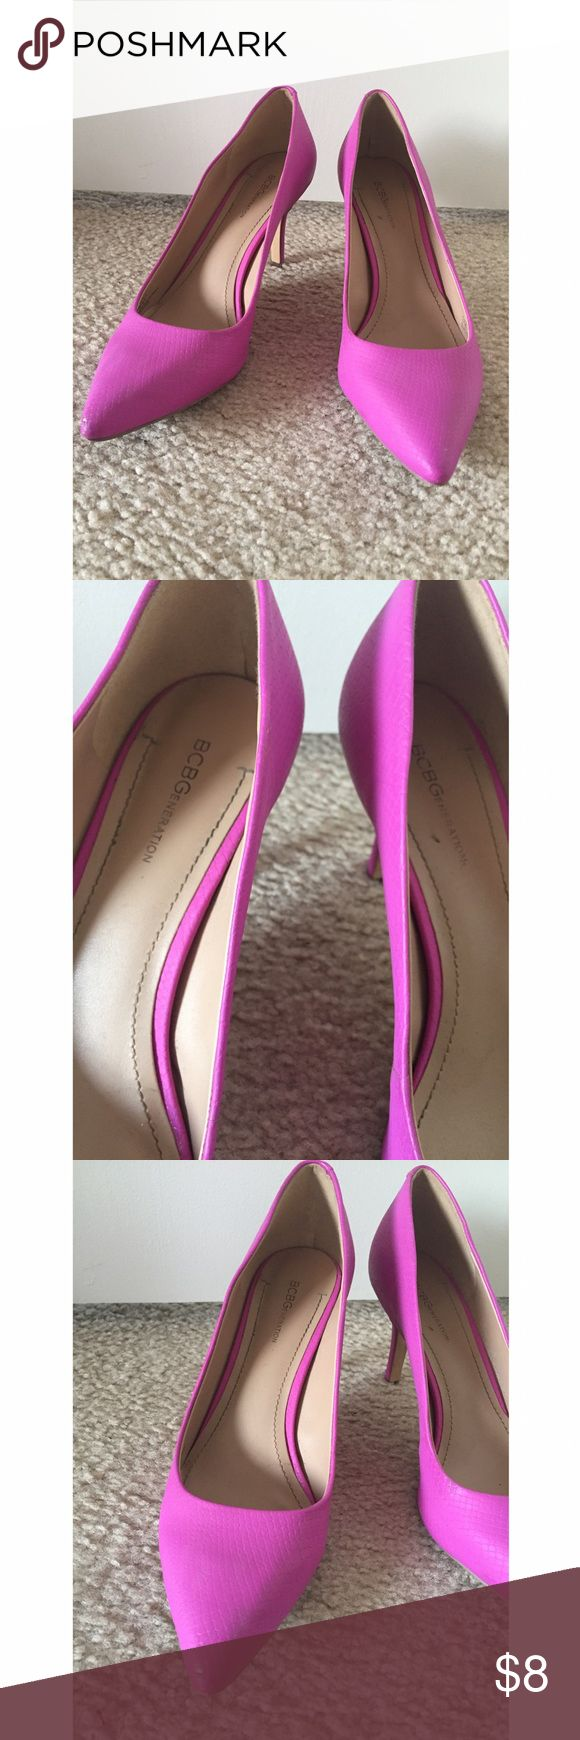 High Heels Beautiful pumps, have been slightly used. Super comfy and awesome to wear to help brighten up an outfit!! Wear is seen in third and fifth photos. ❤ BCBGeneration Shoes Heels